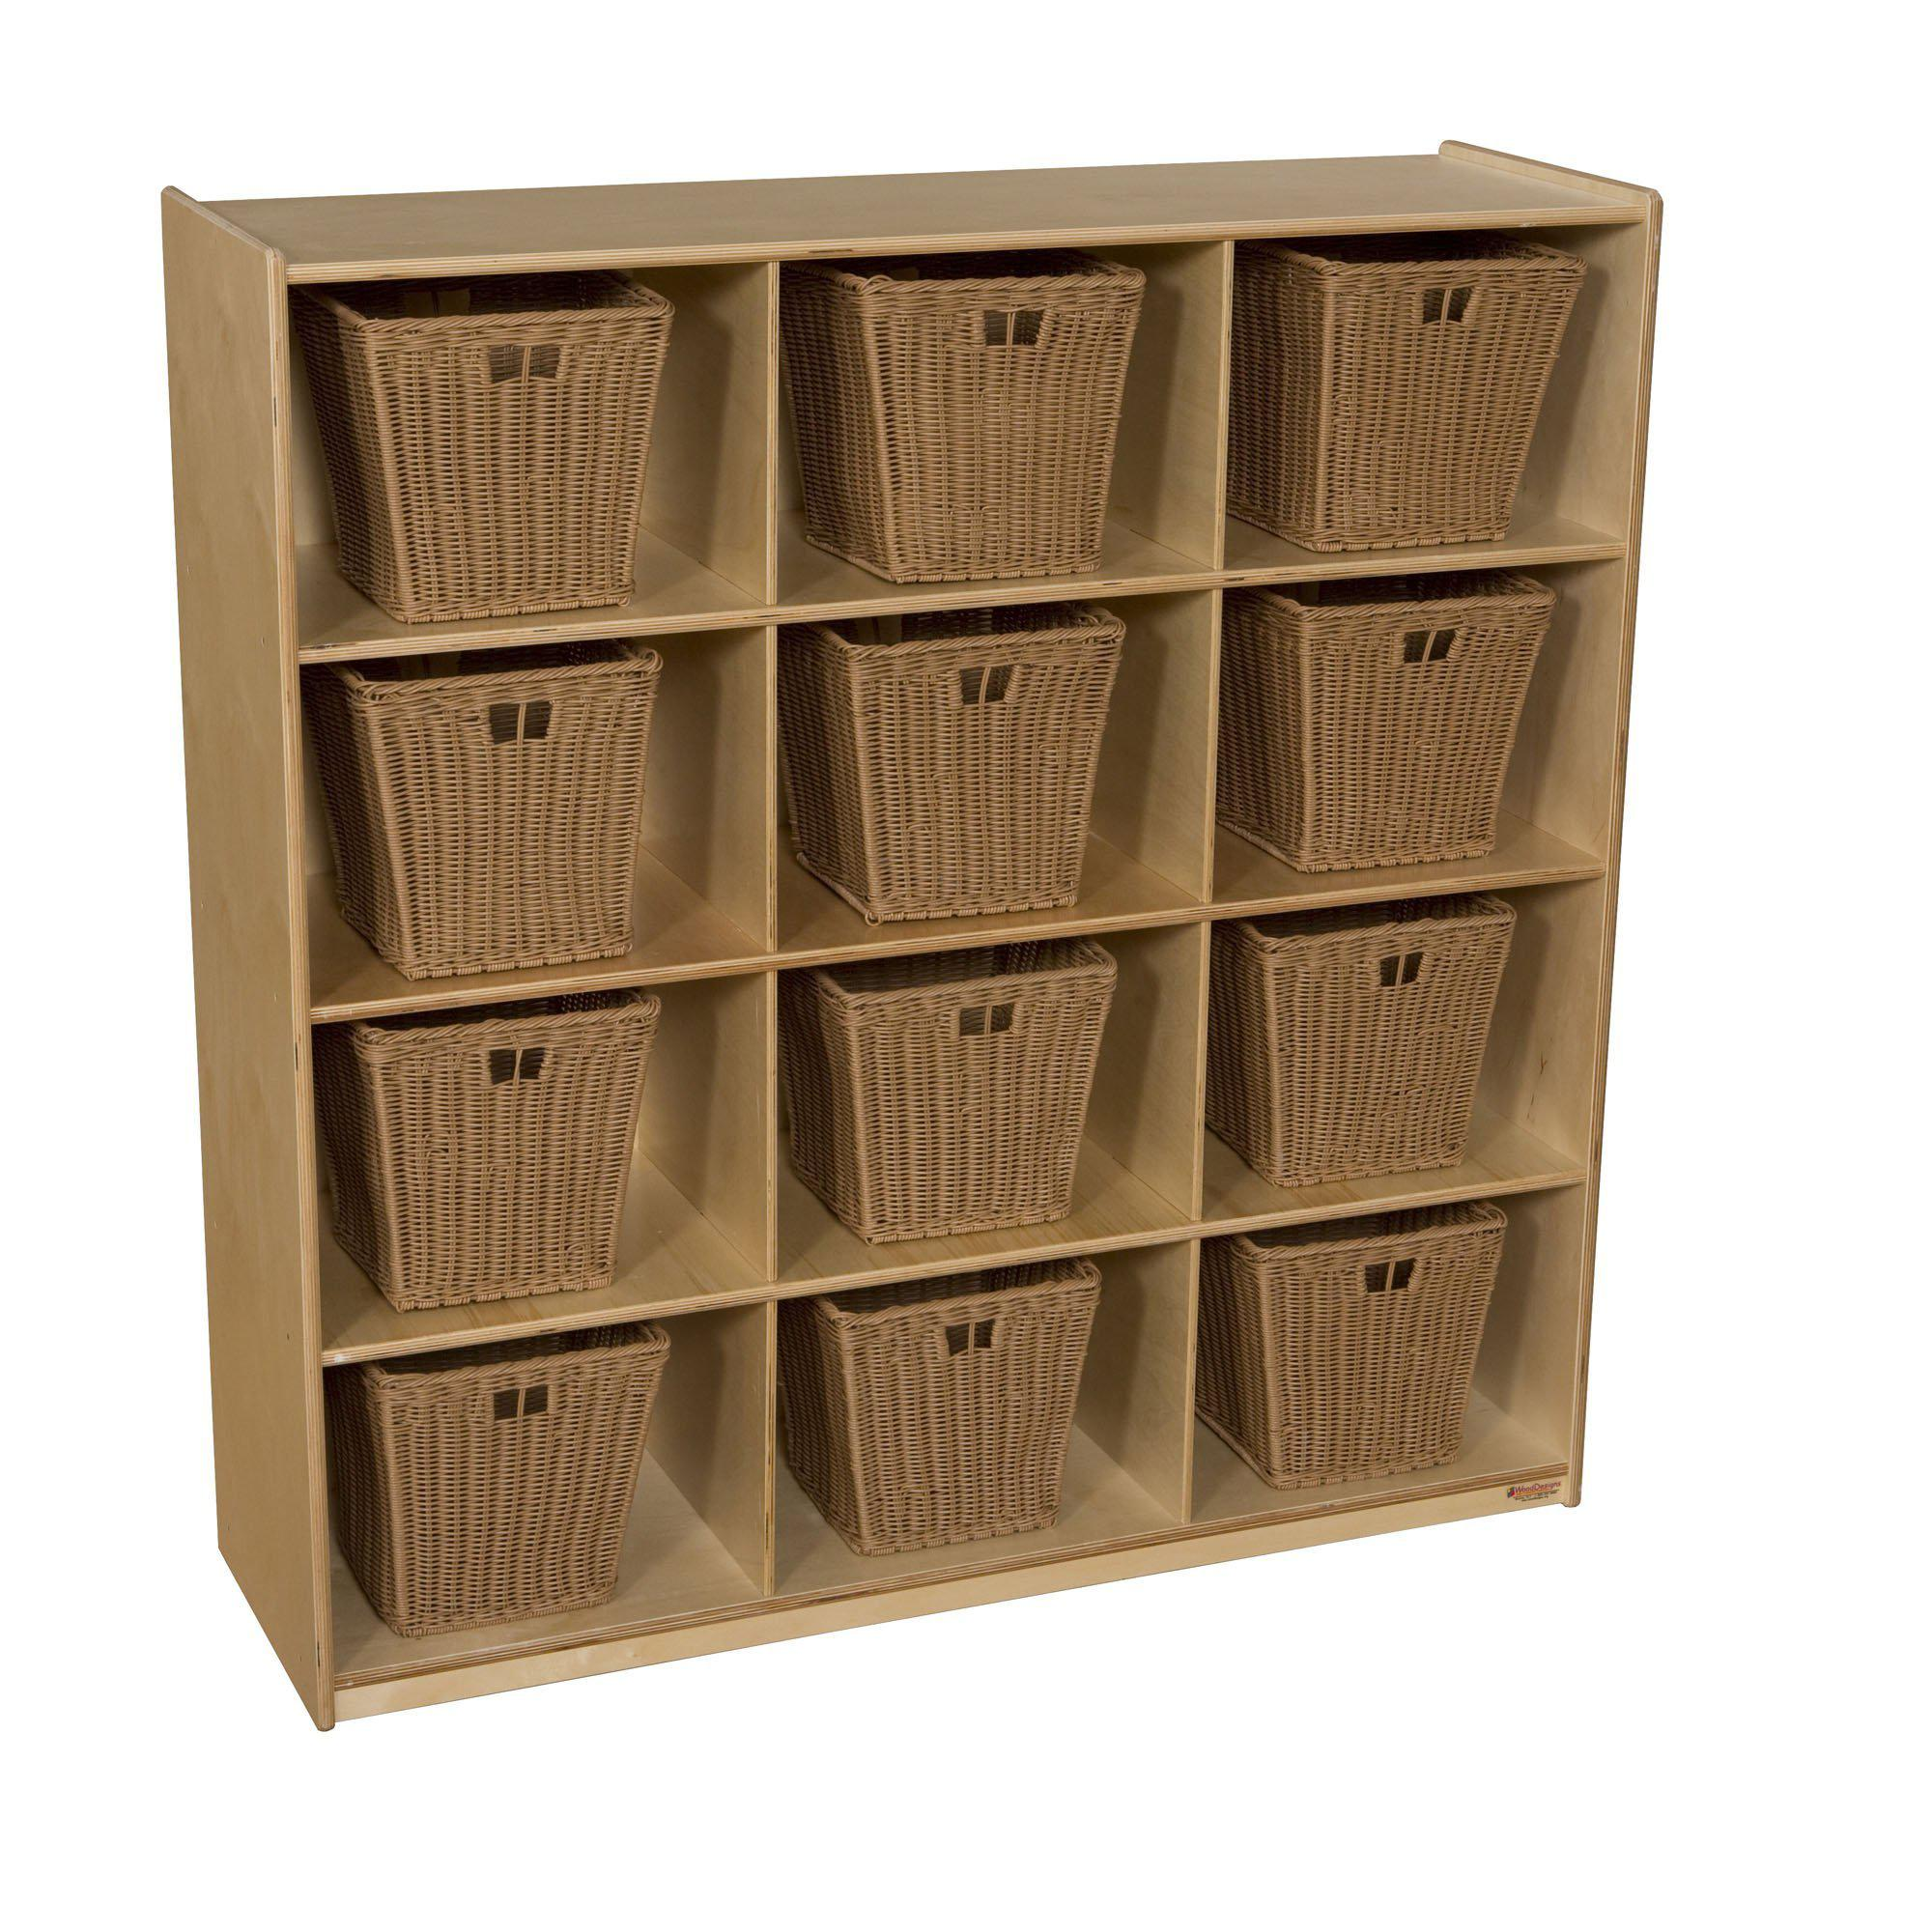 Wood Designs 12 Big Cubby Storage with Medium Baskets